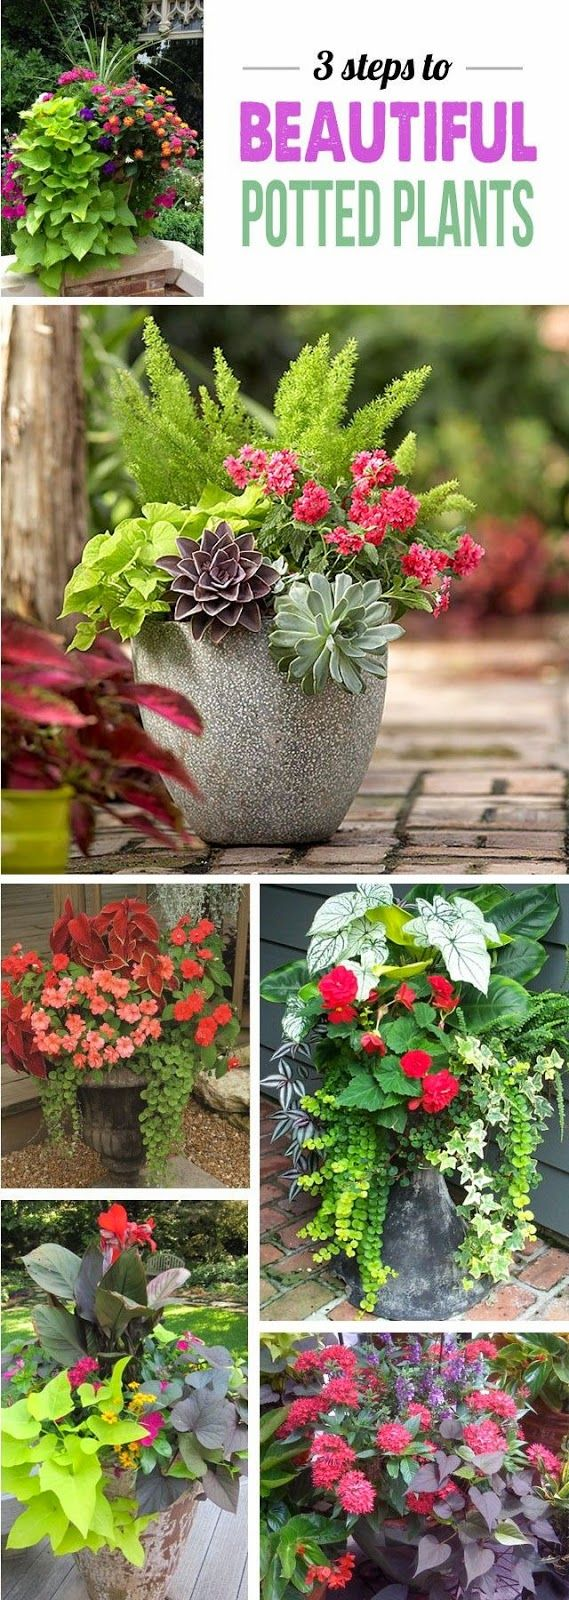 These are great tips for making stunning potted plant arrangements. | Deloufleur Decor & Designs | (618) 985-3355 | www.deloufleur.com